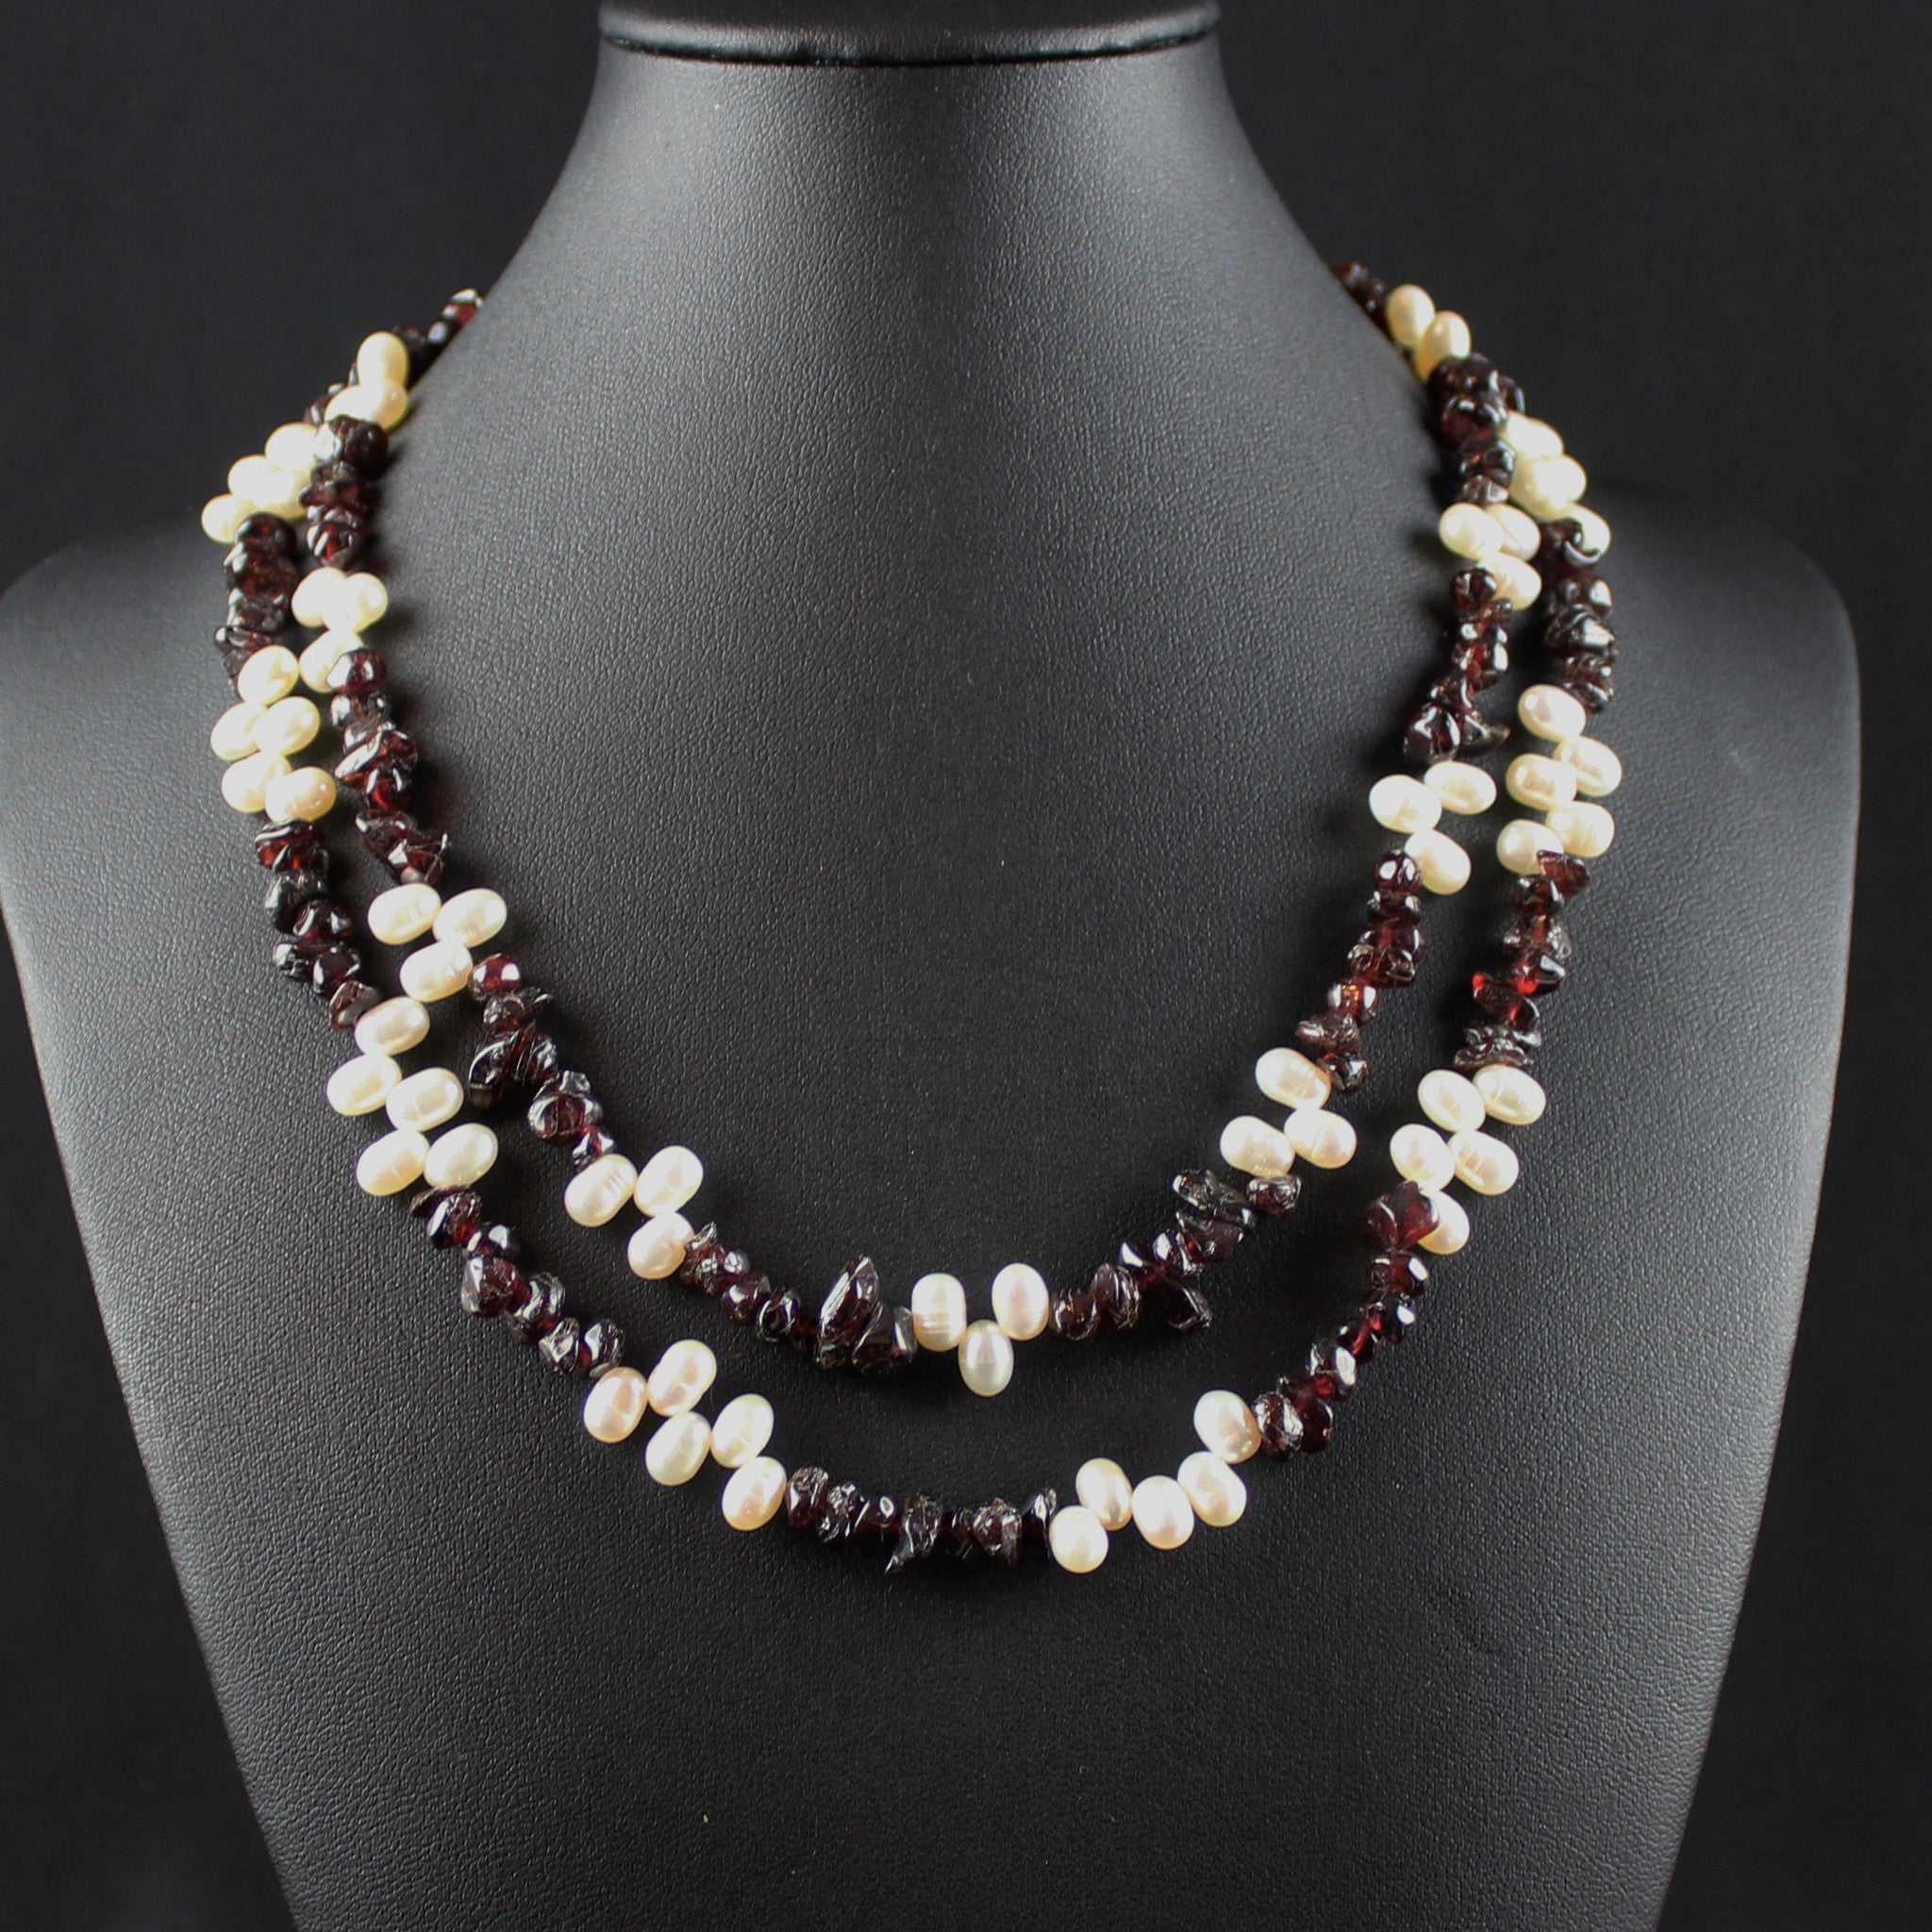 Susan M - Garnet & Pearl Necklace